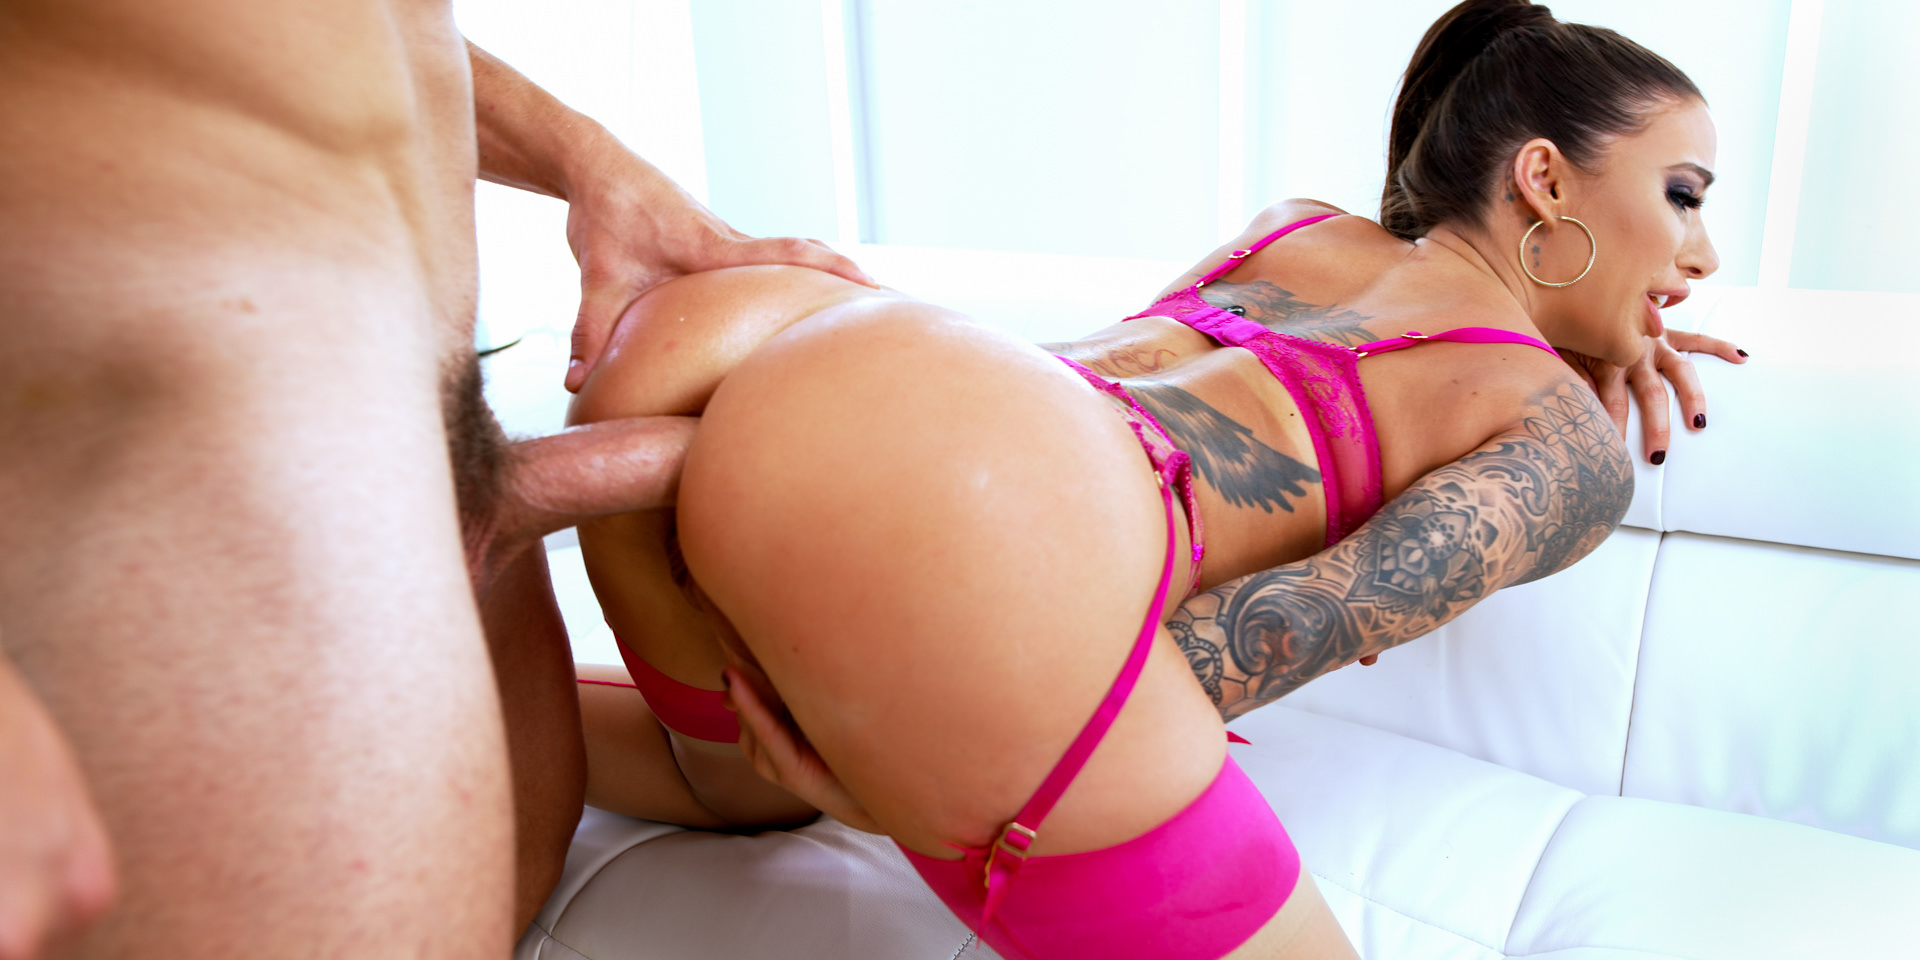 [EvilAngel] Gia DiMarco (Busty, Gaping Anal MILF / 01.09.2021)